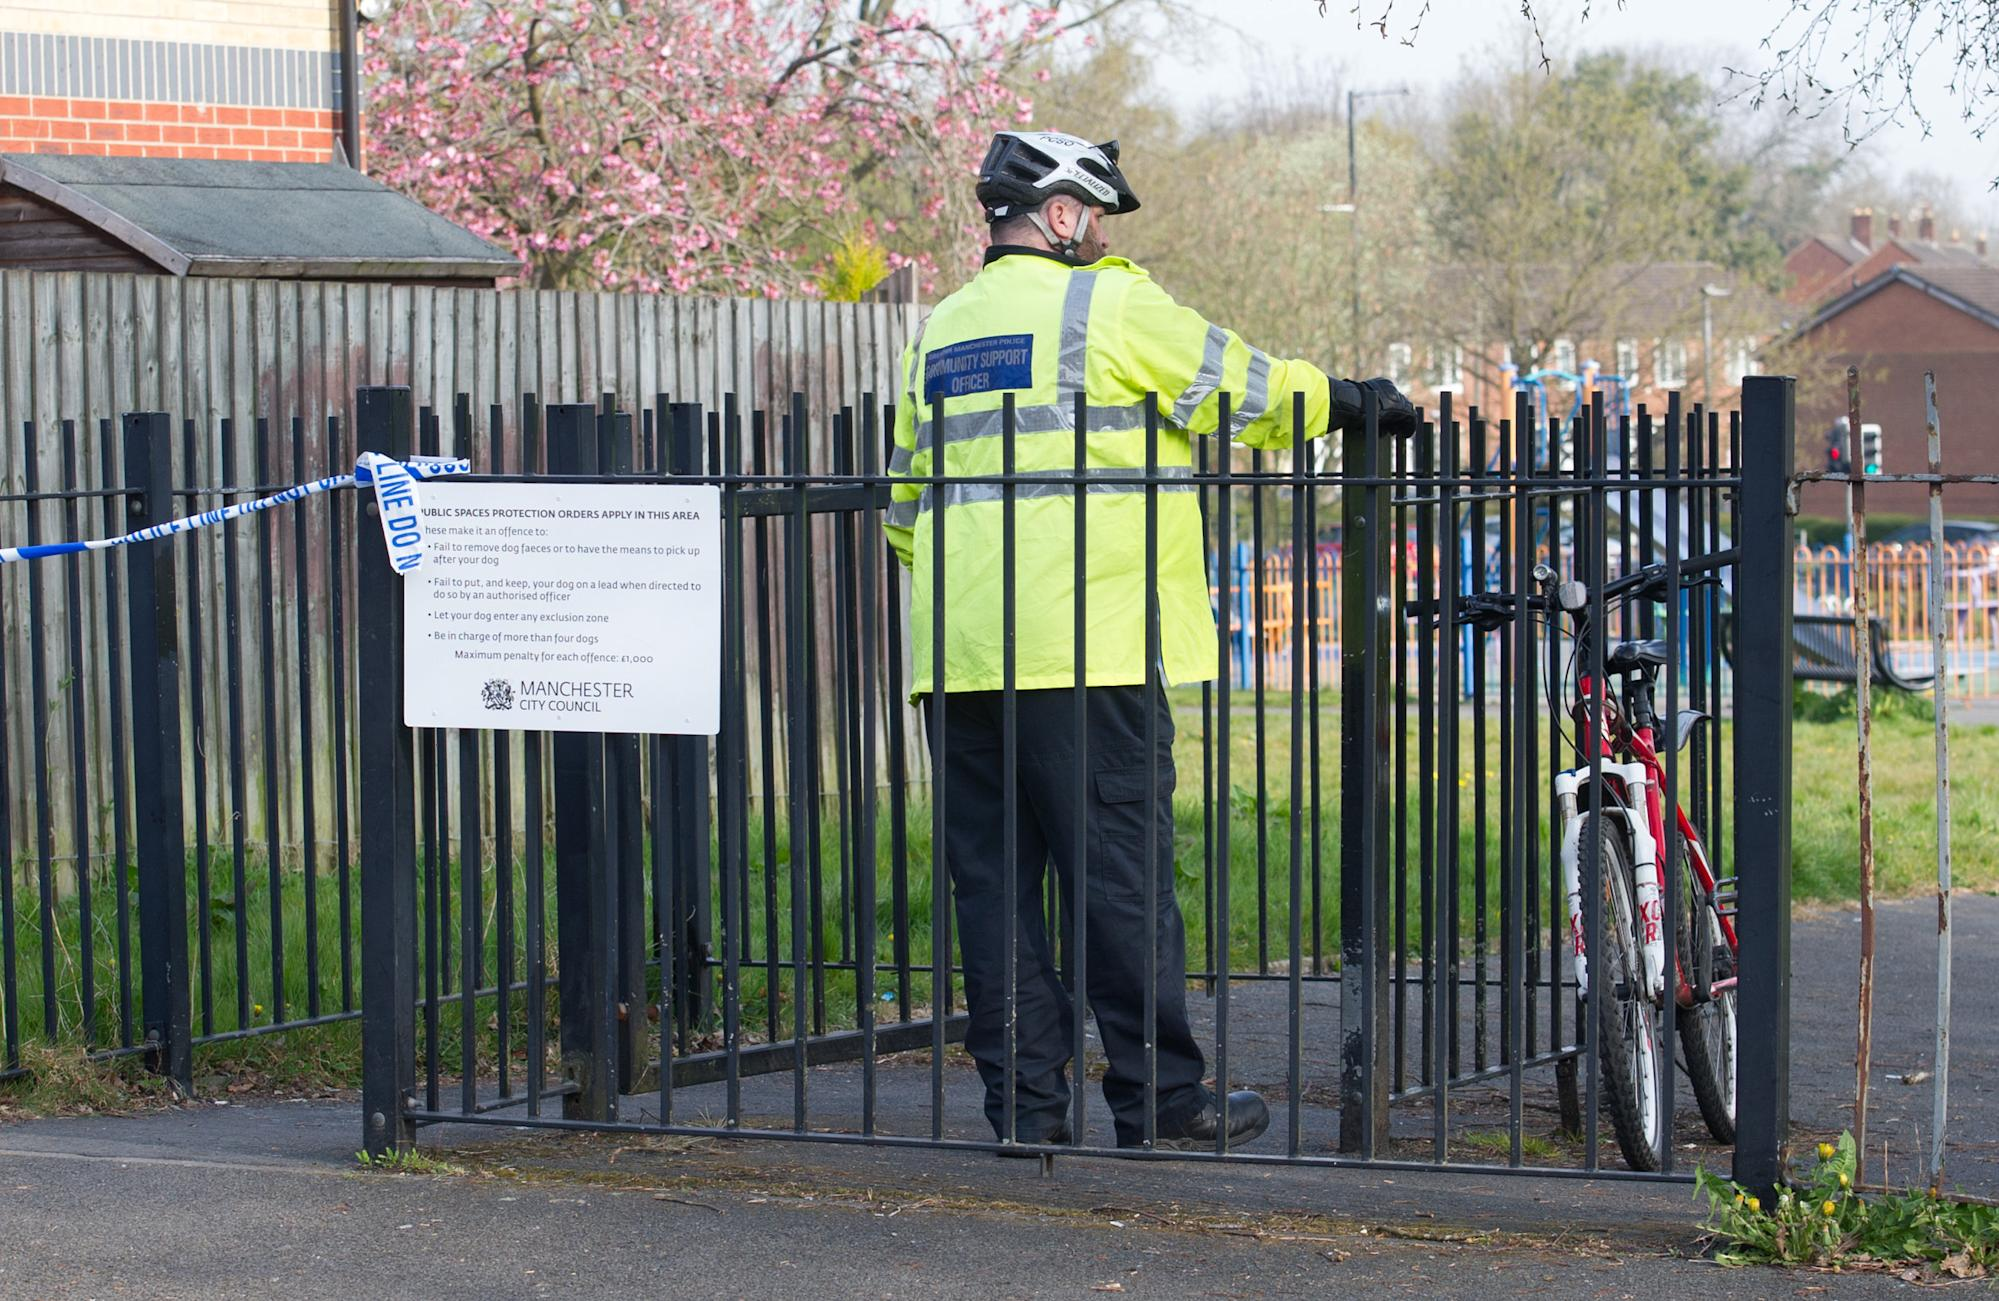 Woman 'gang raped' in 'horrendous' and 'sickening' Manchester park attack, say police